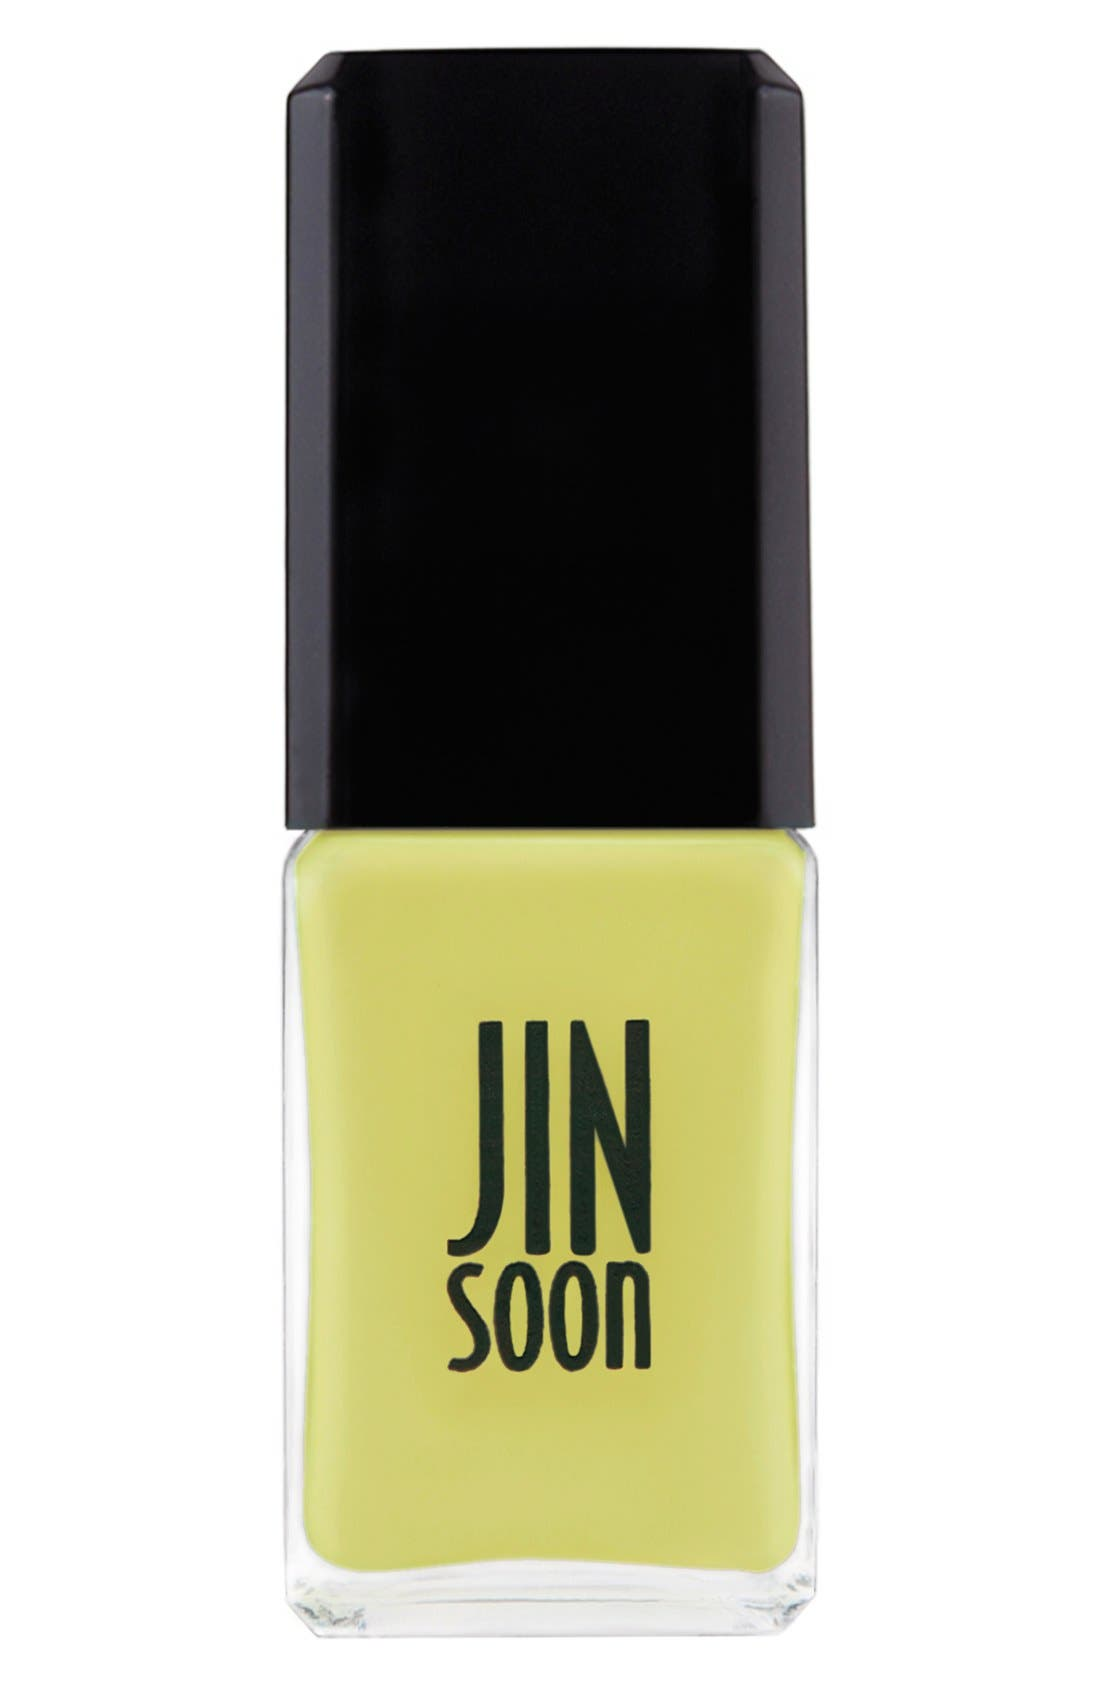 JINsoon 'Charme' Nail Polish